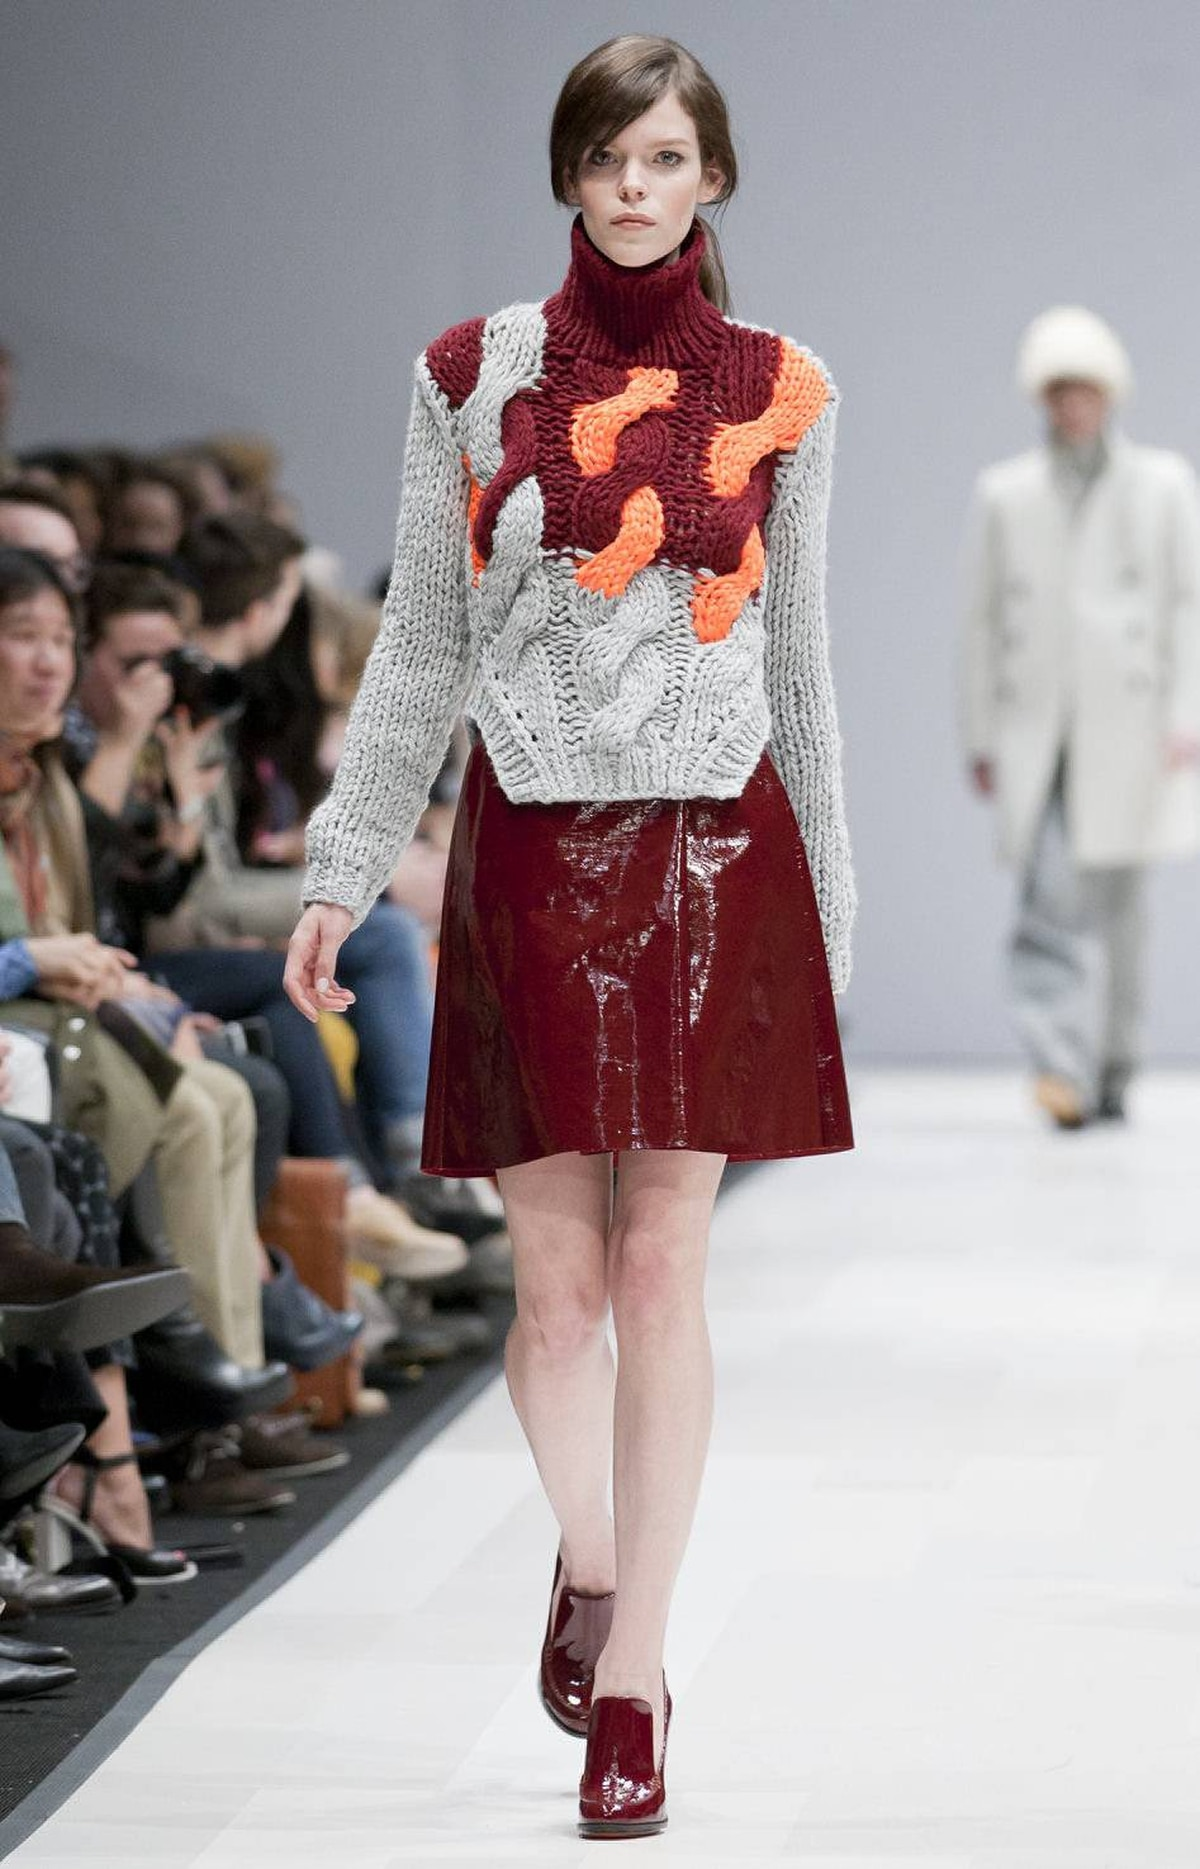 The standard 'basics with a twist' refrain is no longer sufficient to describe Joe Fresh, which has grown into a trendsetting, runway-centric brand since its inception six years ago. For fall, the sweaters - including this neon-on-grey number - were a standout.